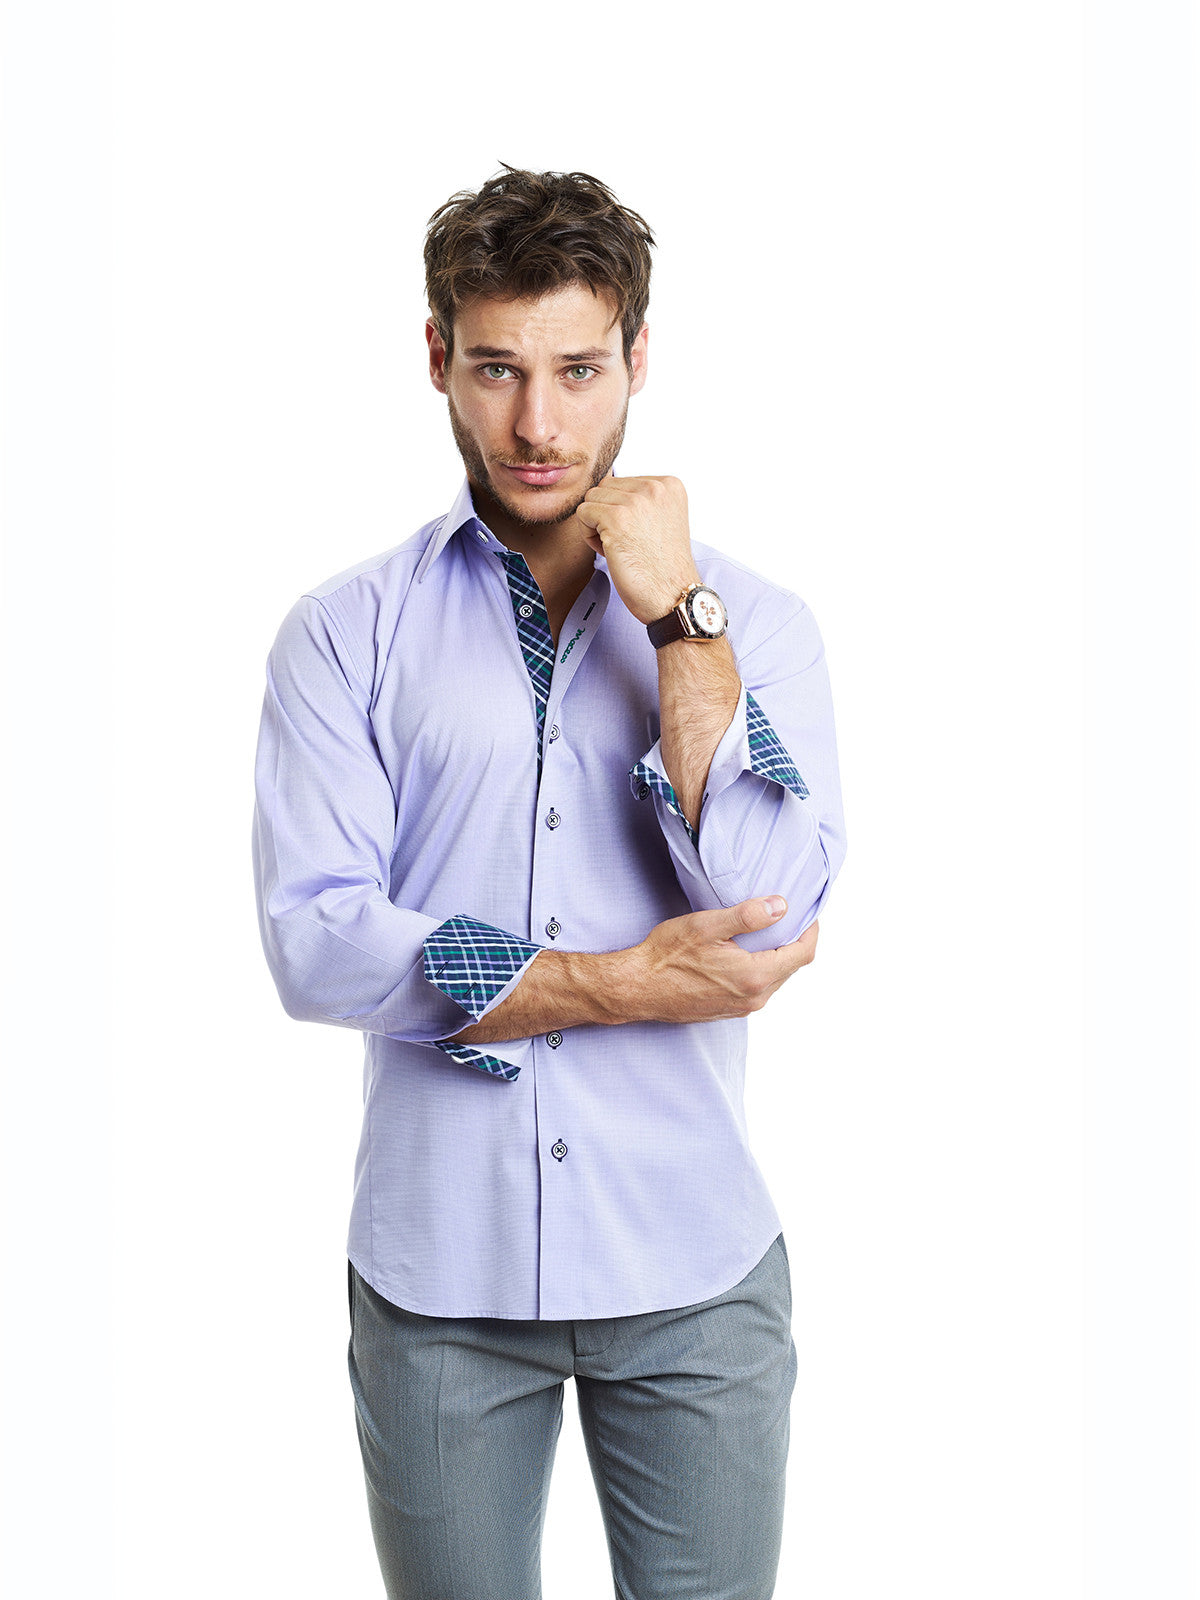 Maceoo Brax Purple Shirt - Slim